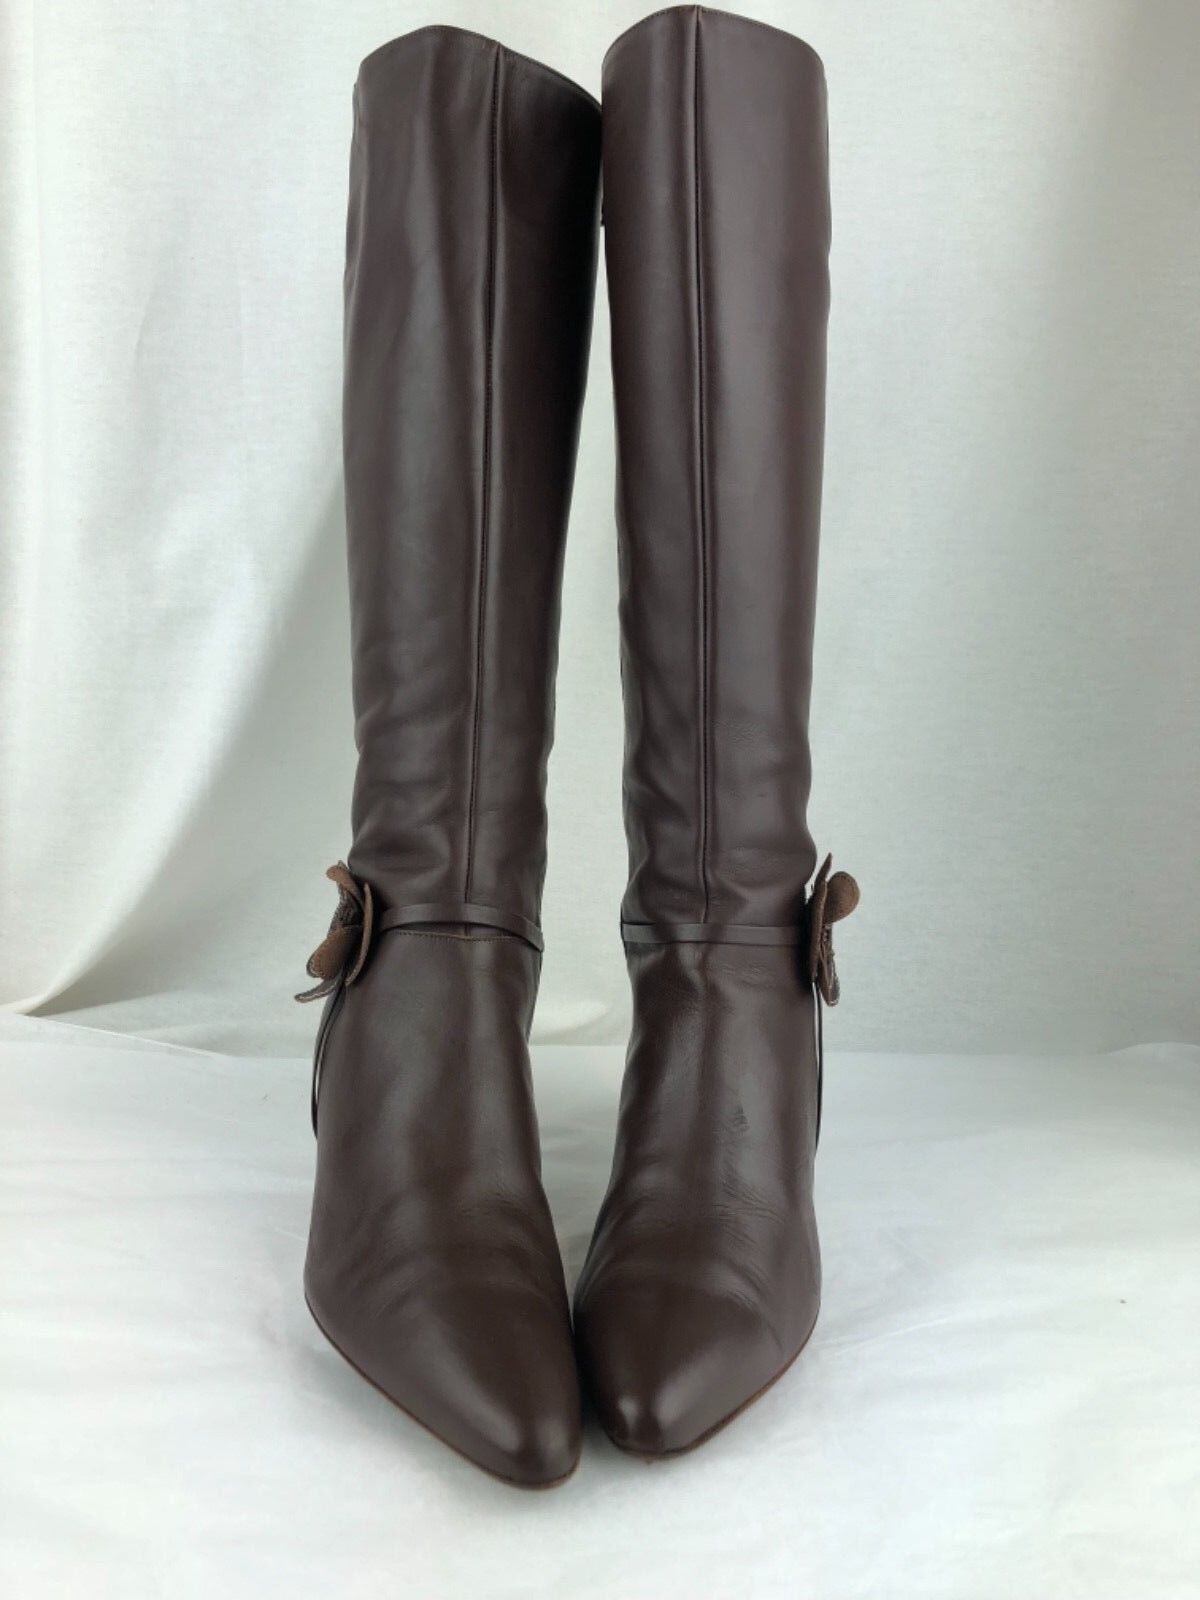 J.Crew Brown Leather Side Zip Flower Knee Boots Women's Size 8 H Style 57240